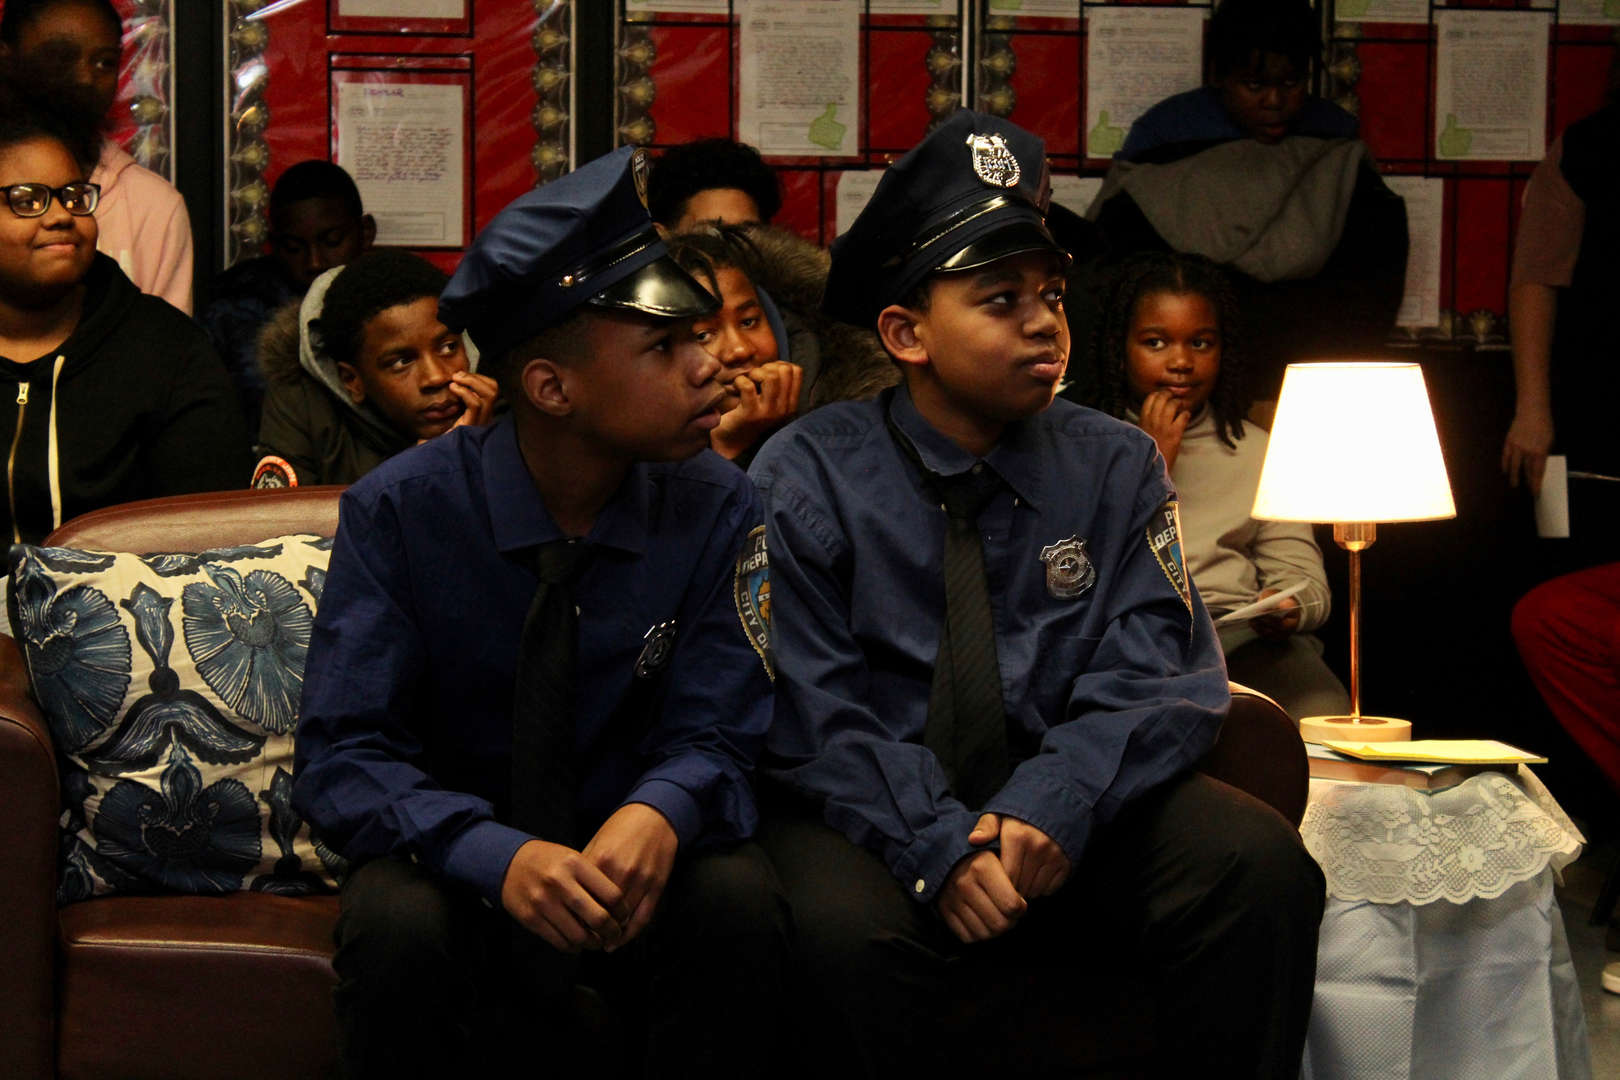 Actors dressed as two police officers